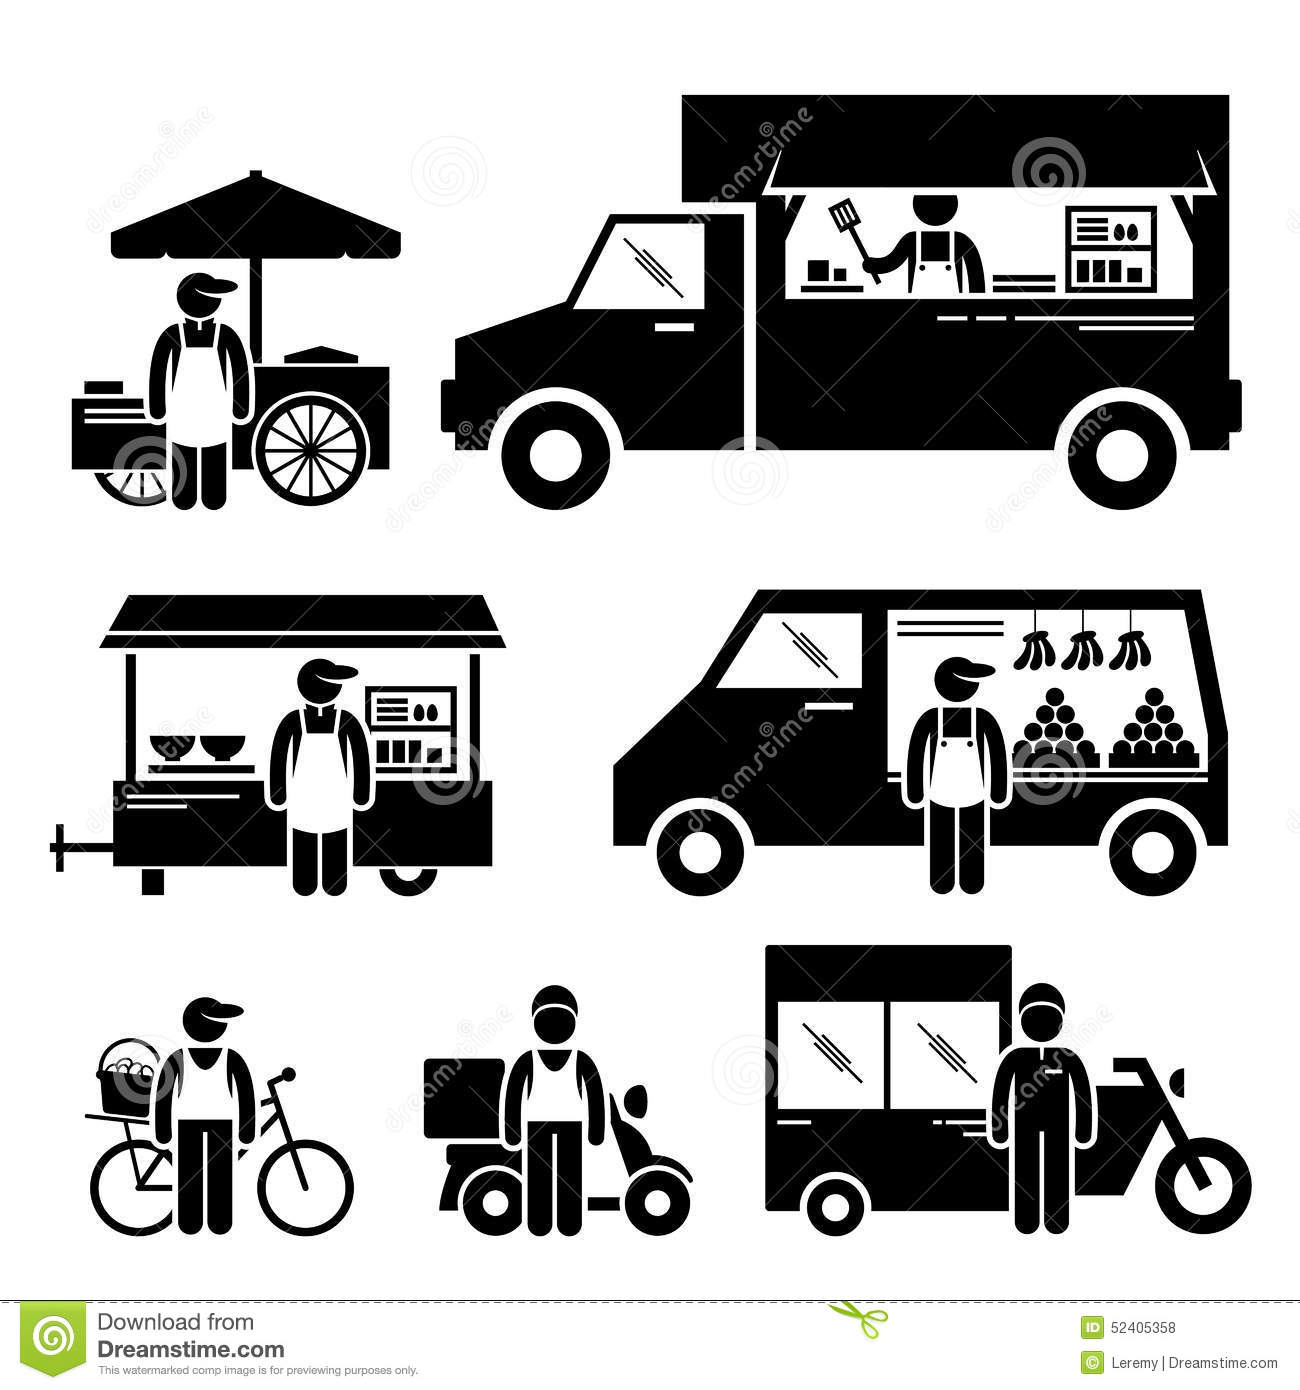 mobile food vehicles cliparts stock vector